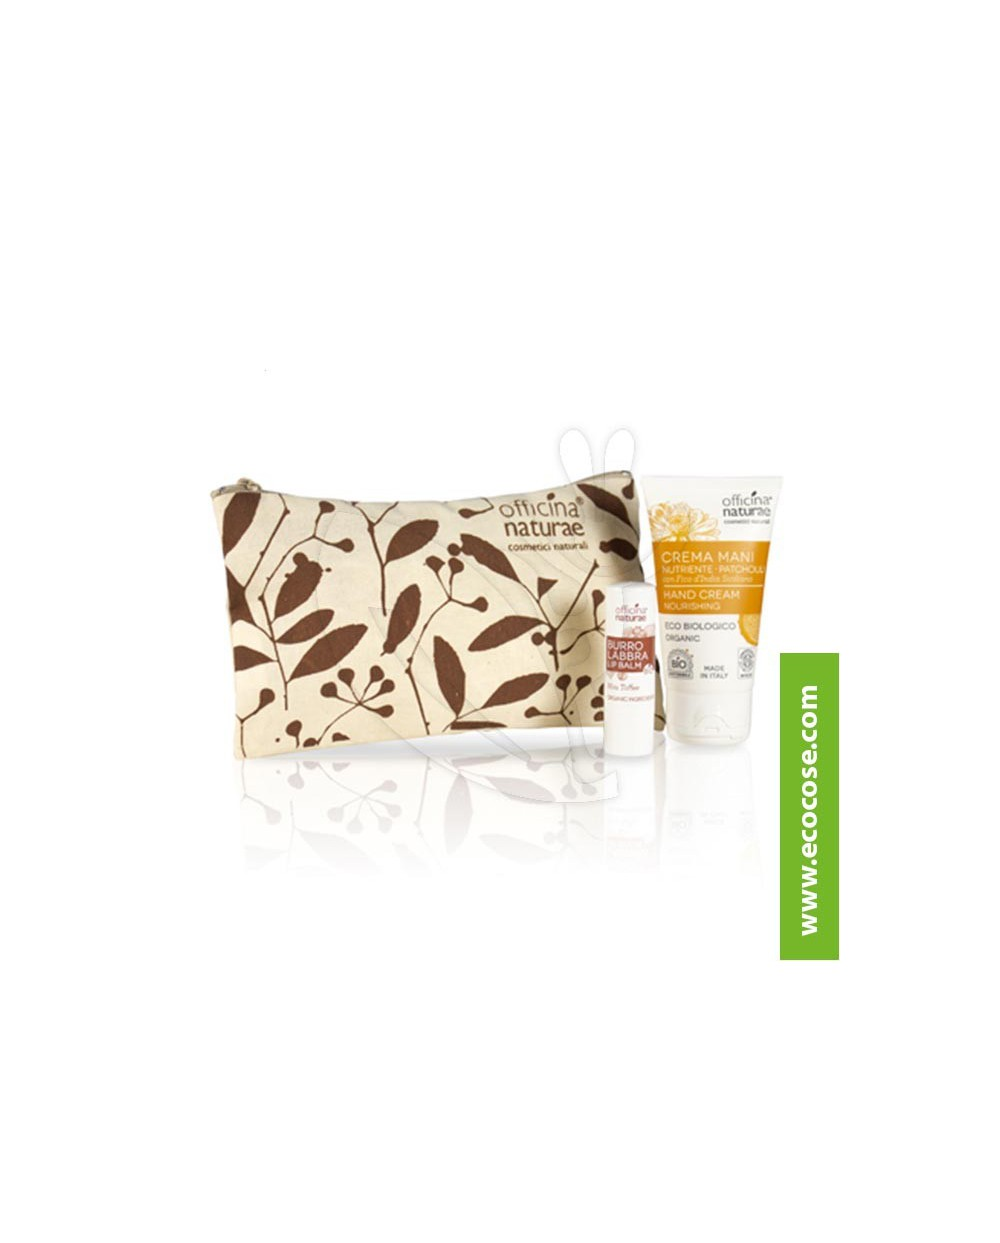 Officina Naturae - Mini kit Proteggimi Patchouli e Mou Toffee